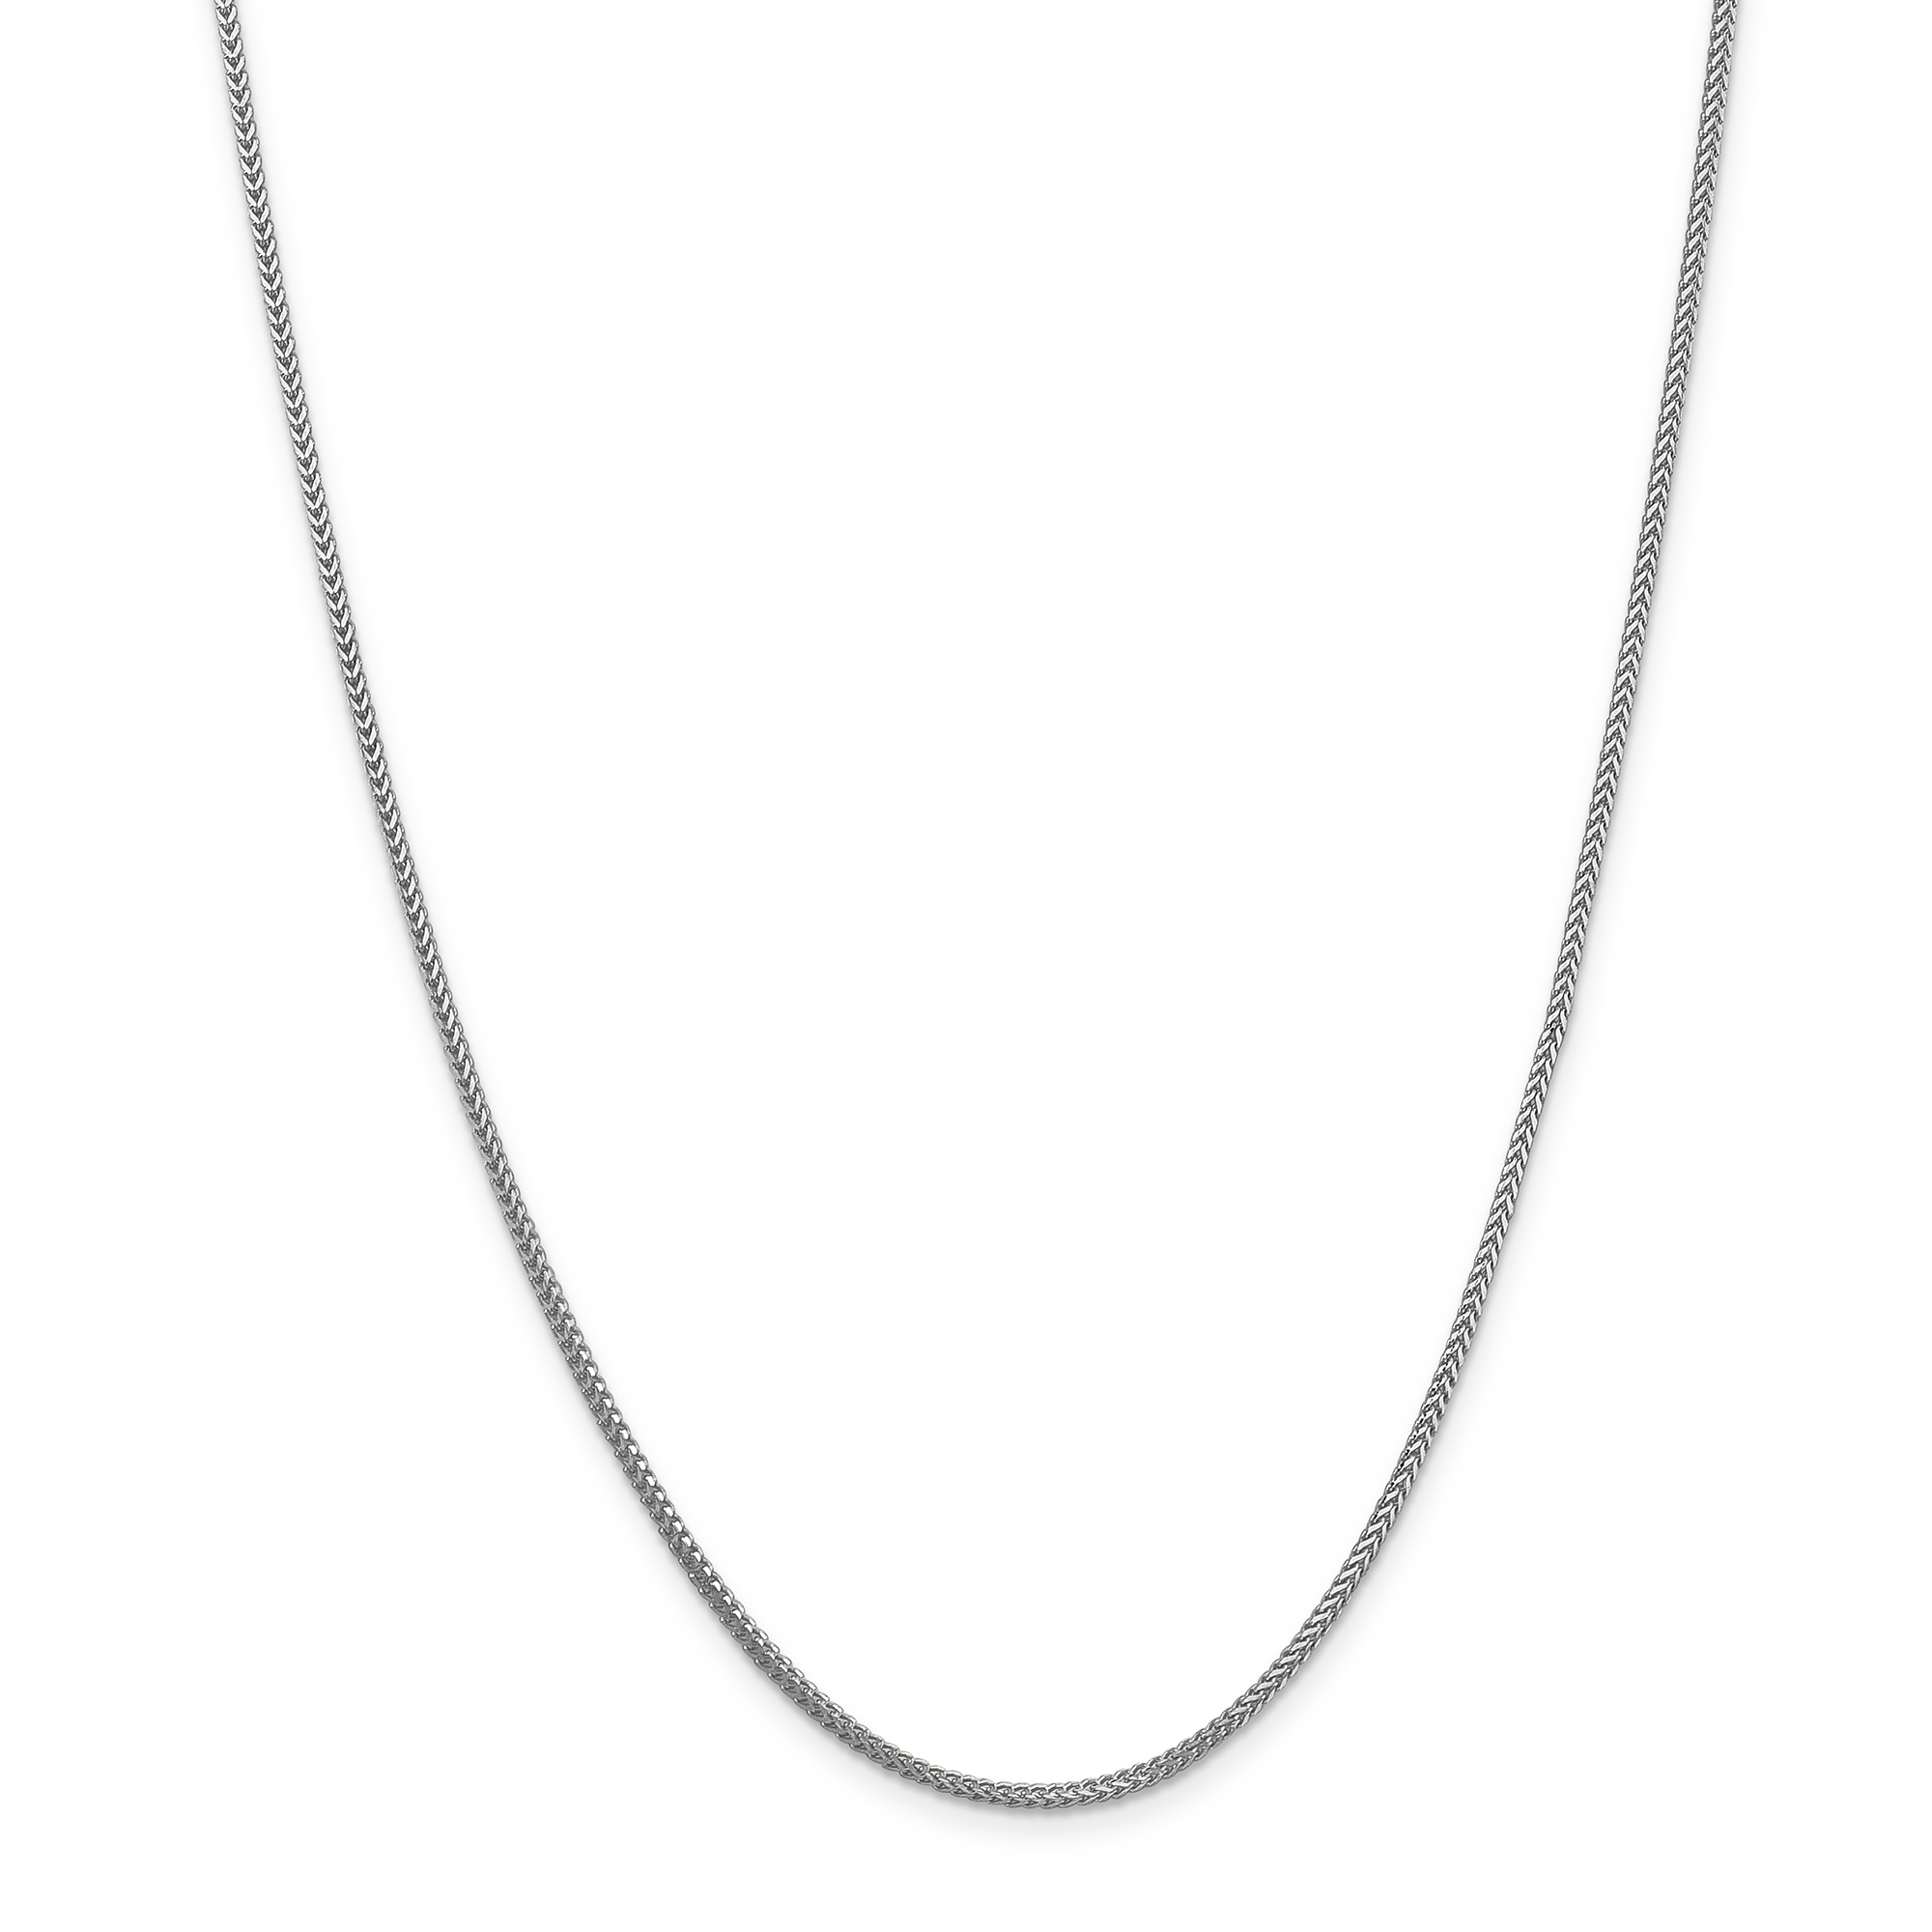 14k White Gold 1.3mm Franco Chain Necklace 20 Inch Pendant Charm Fine Jewelry Gifts For Women For Her - image 5 de 5